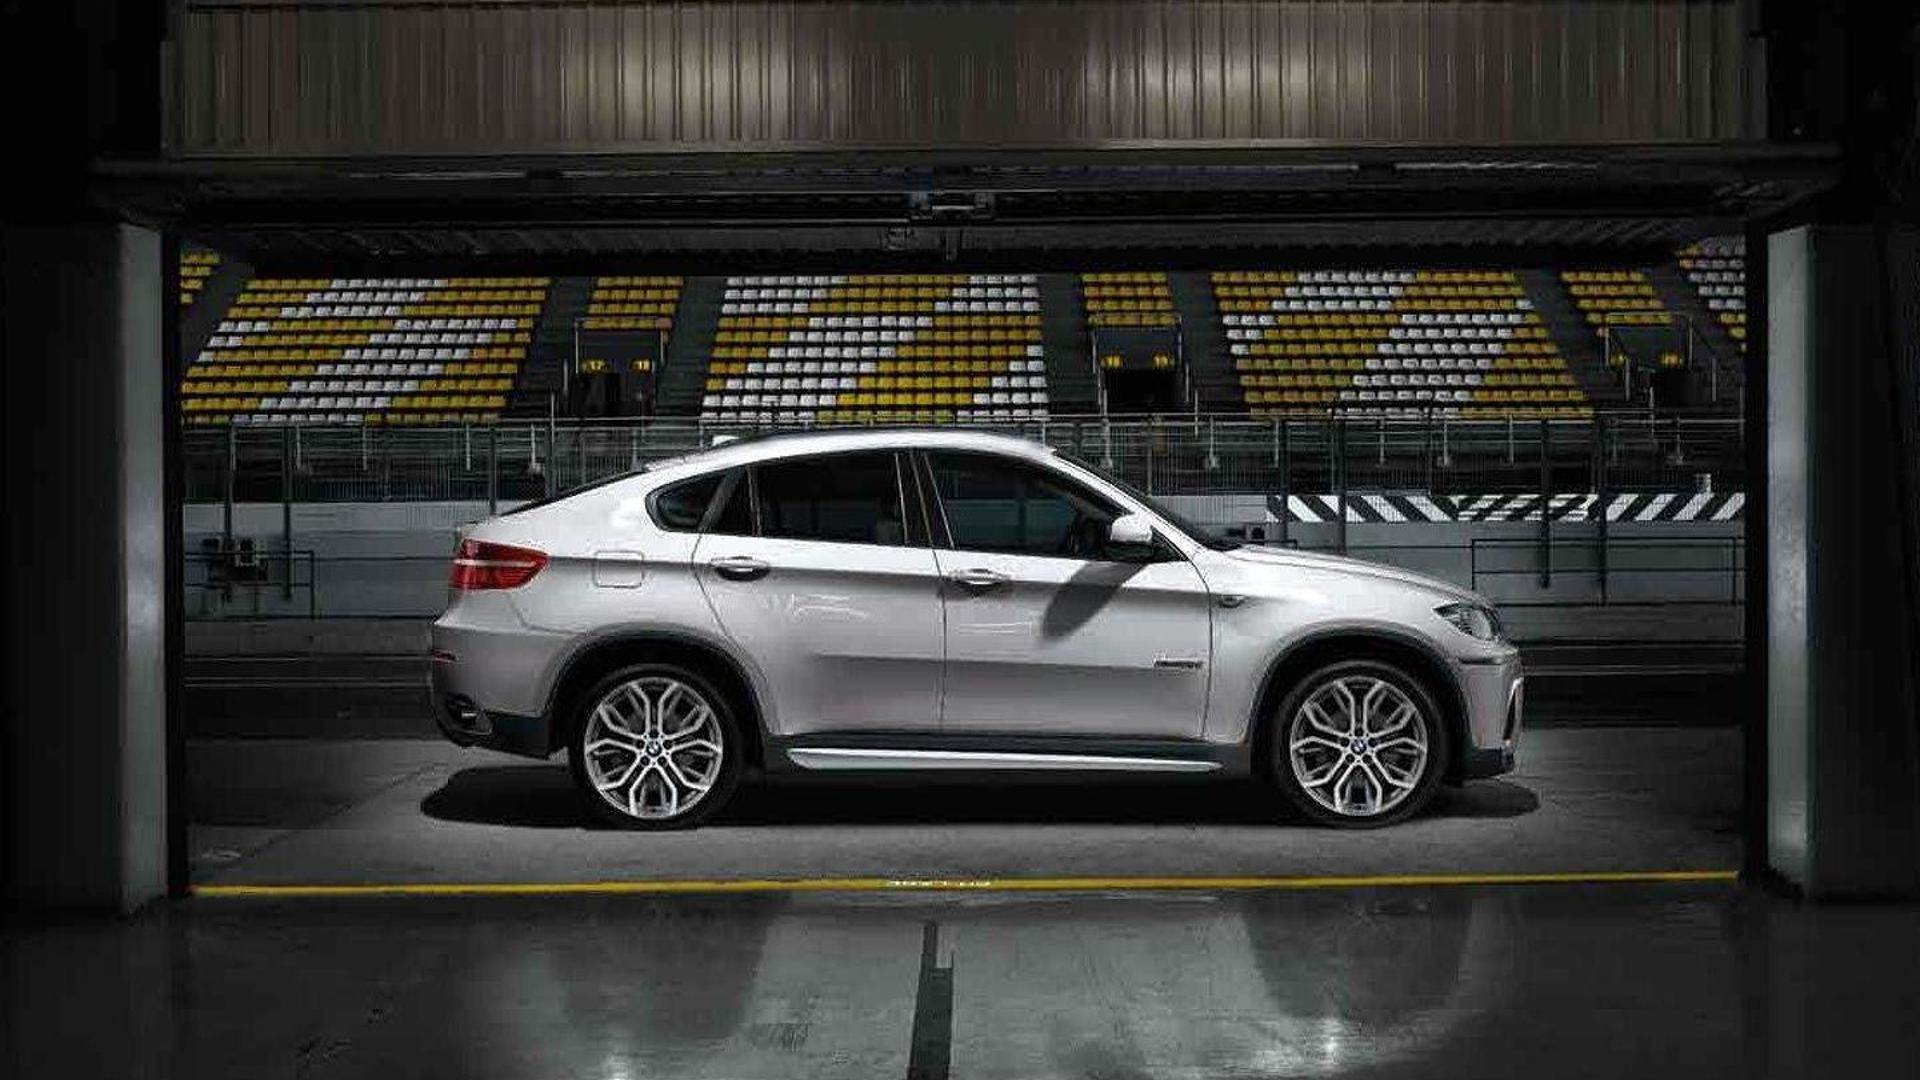 bmw x6 performance unlimited special edition revealed for japan. Black Bedroom Furniture Sets. Home Design Ideas